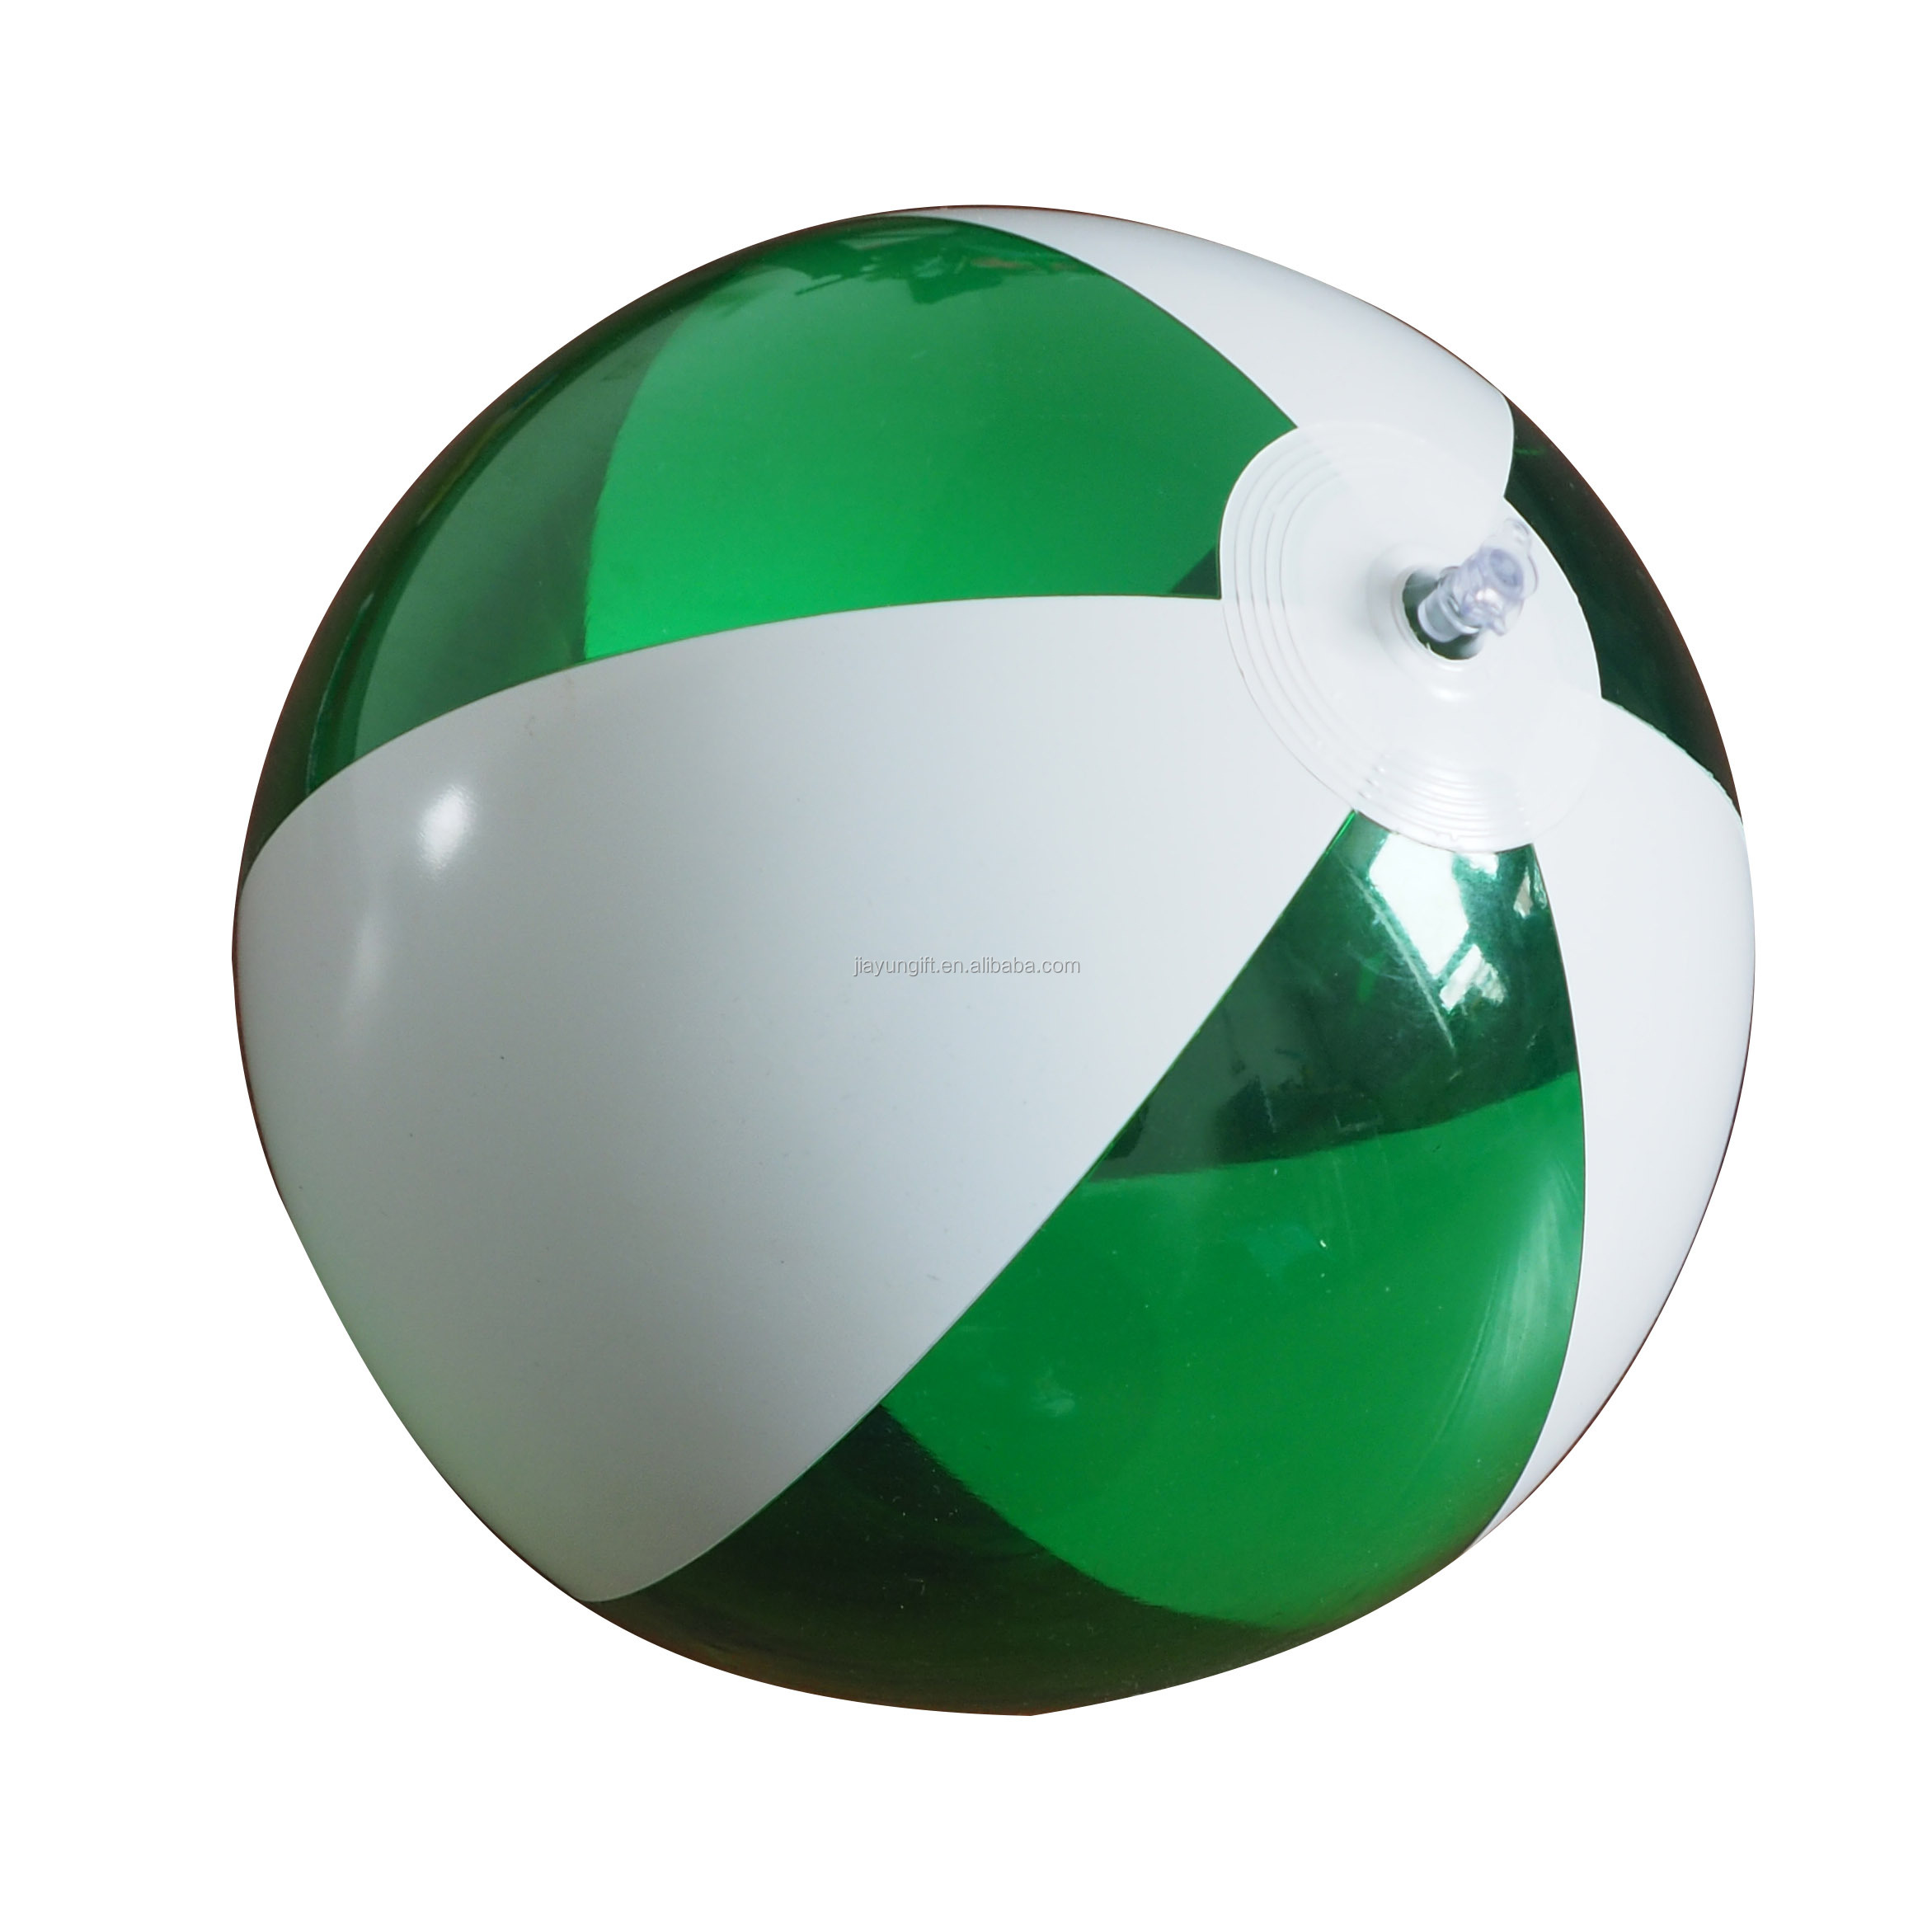 Pvc Inflatable Beach Ball Buy Beach Ball Inflatable Beach Ball Inflatable Ball Product On Alibaba Com